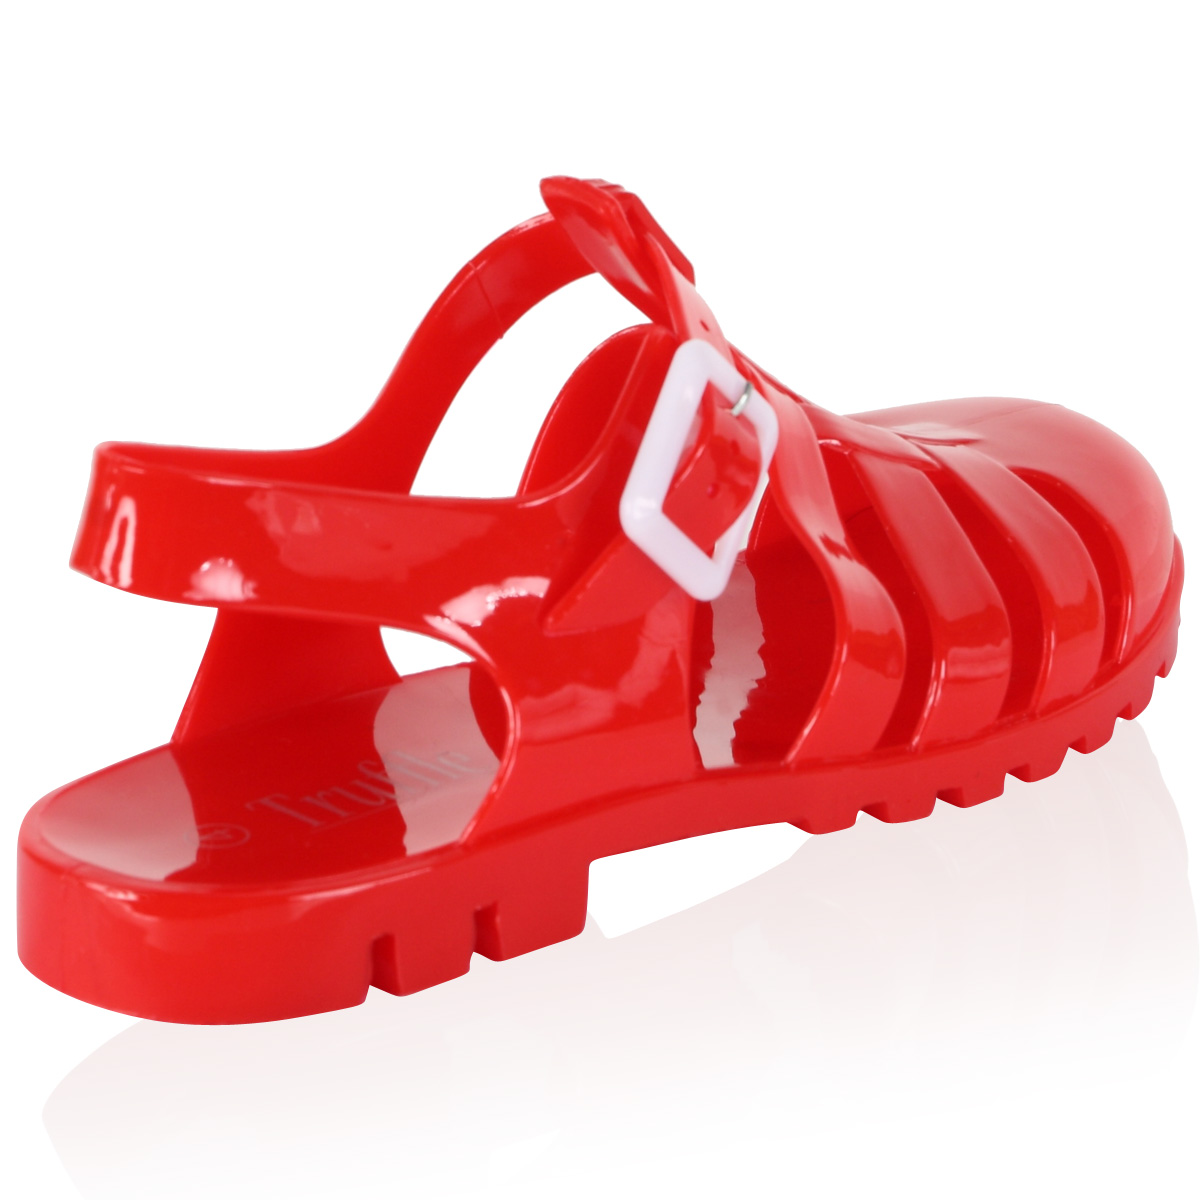 Women's jelly sandals size 10 - New Womens Ladies Retro Holiday Beach Comfy Jelly Gum Shoes Sandals Size 5 10